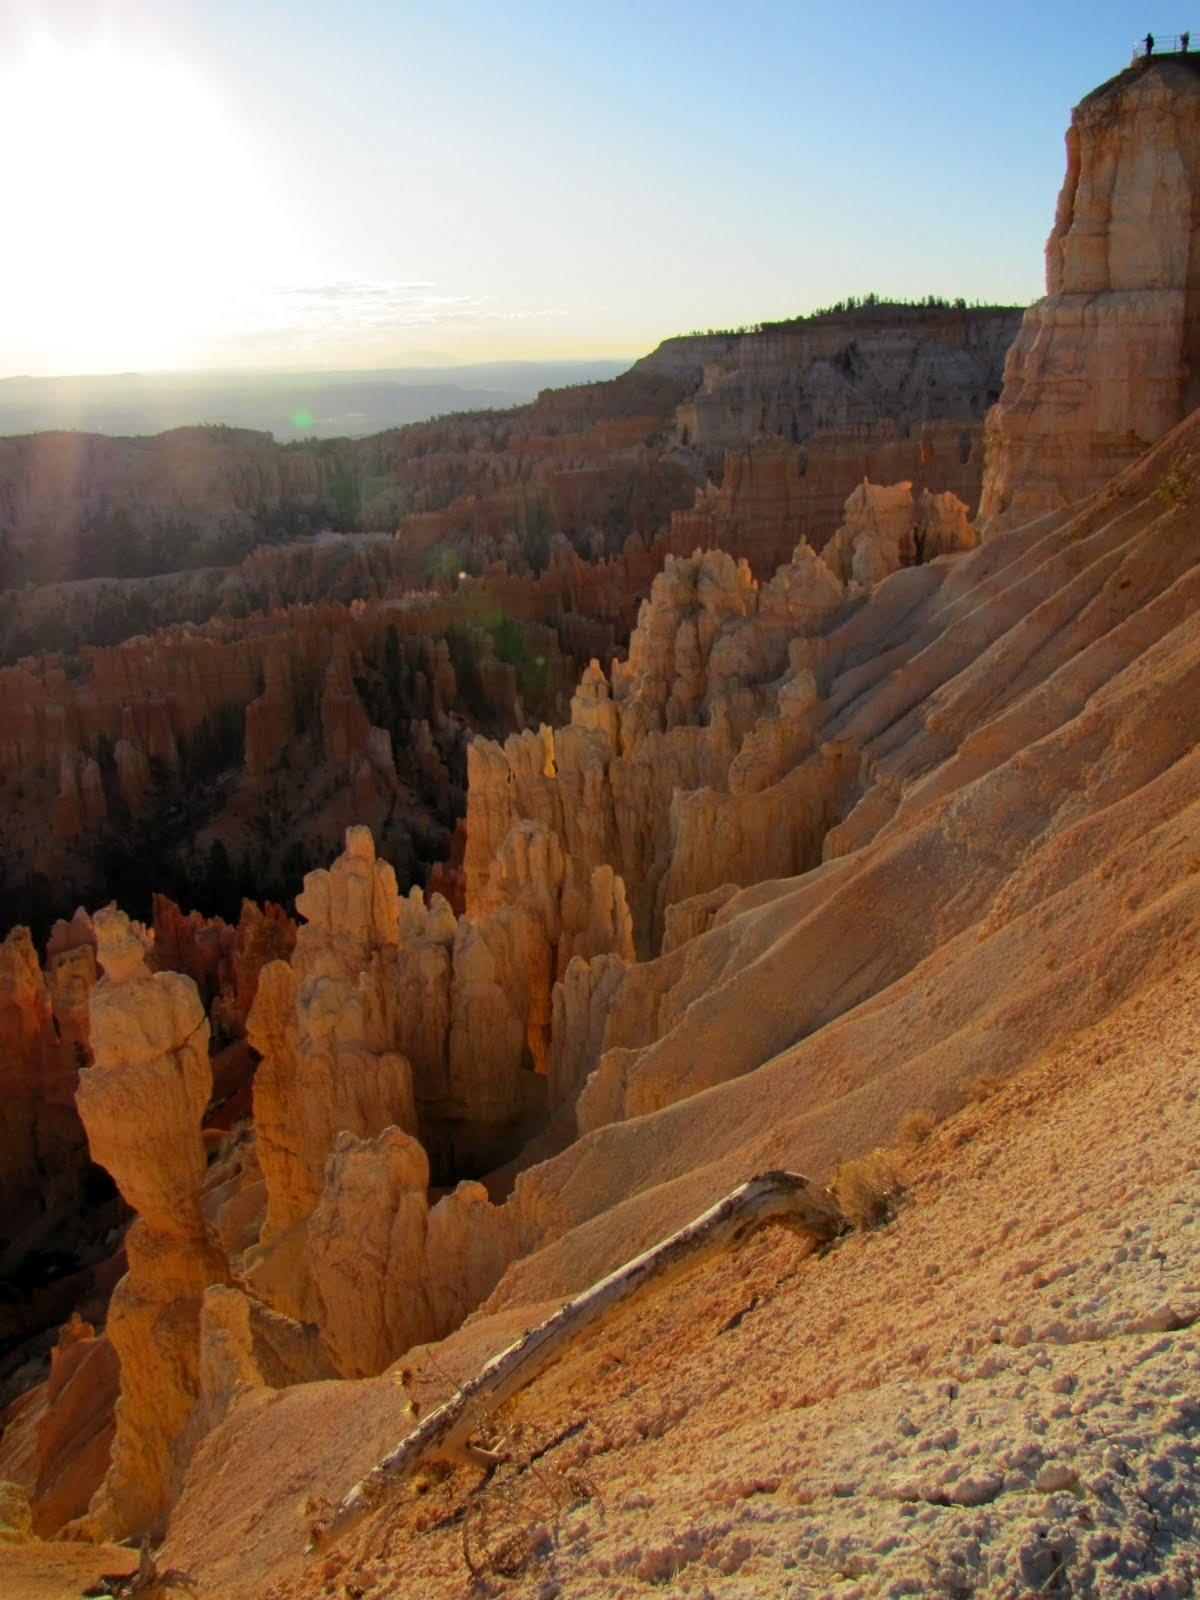 The Bryce Canyon continues far away